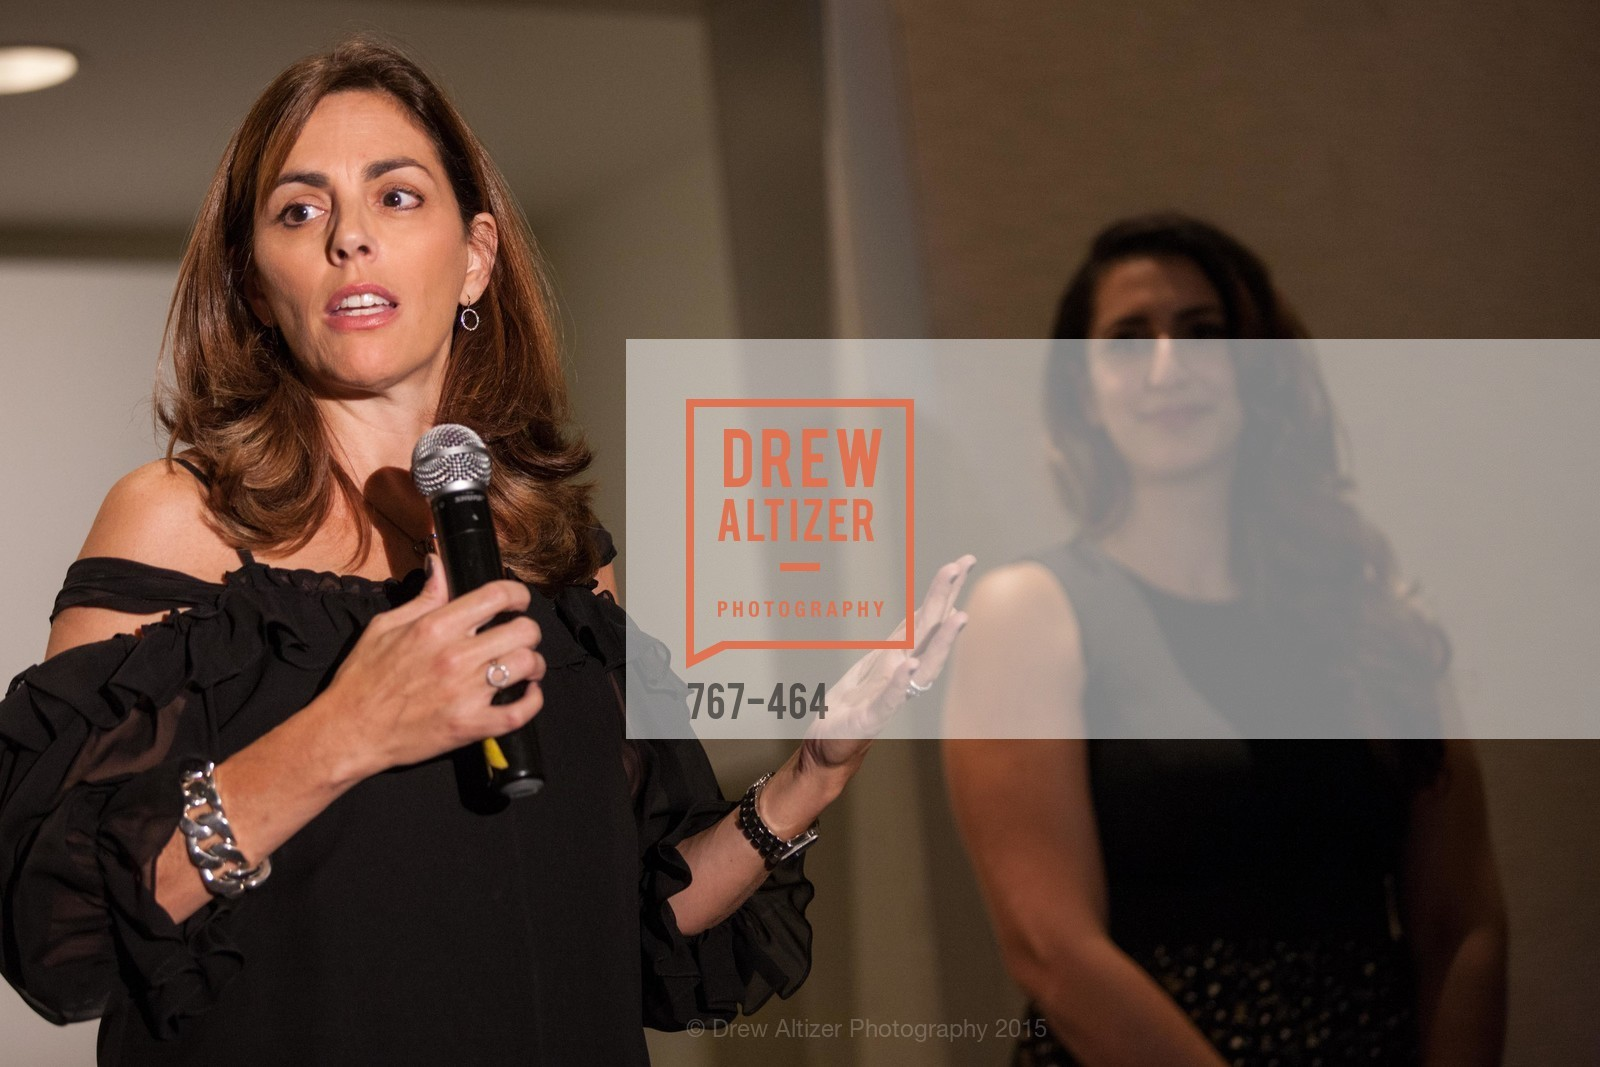 Lisa Lori, Operation Smile Presents THE SAN FRANCISCO 2015 SMILE GALA, InterContinental Hotel, November 7th, 2015,Drew Altizer, Drew Altizer Photography, full-service event agency, private events, San Francisco photographer, photographer California